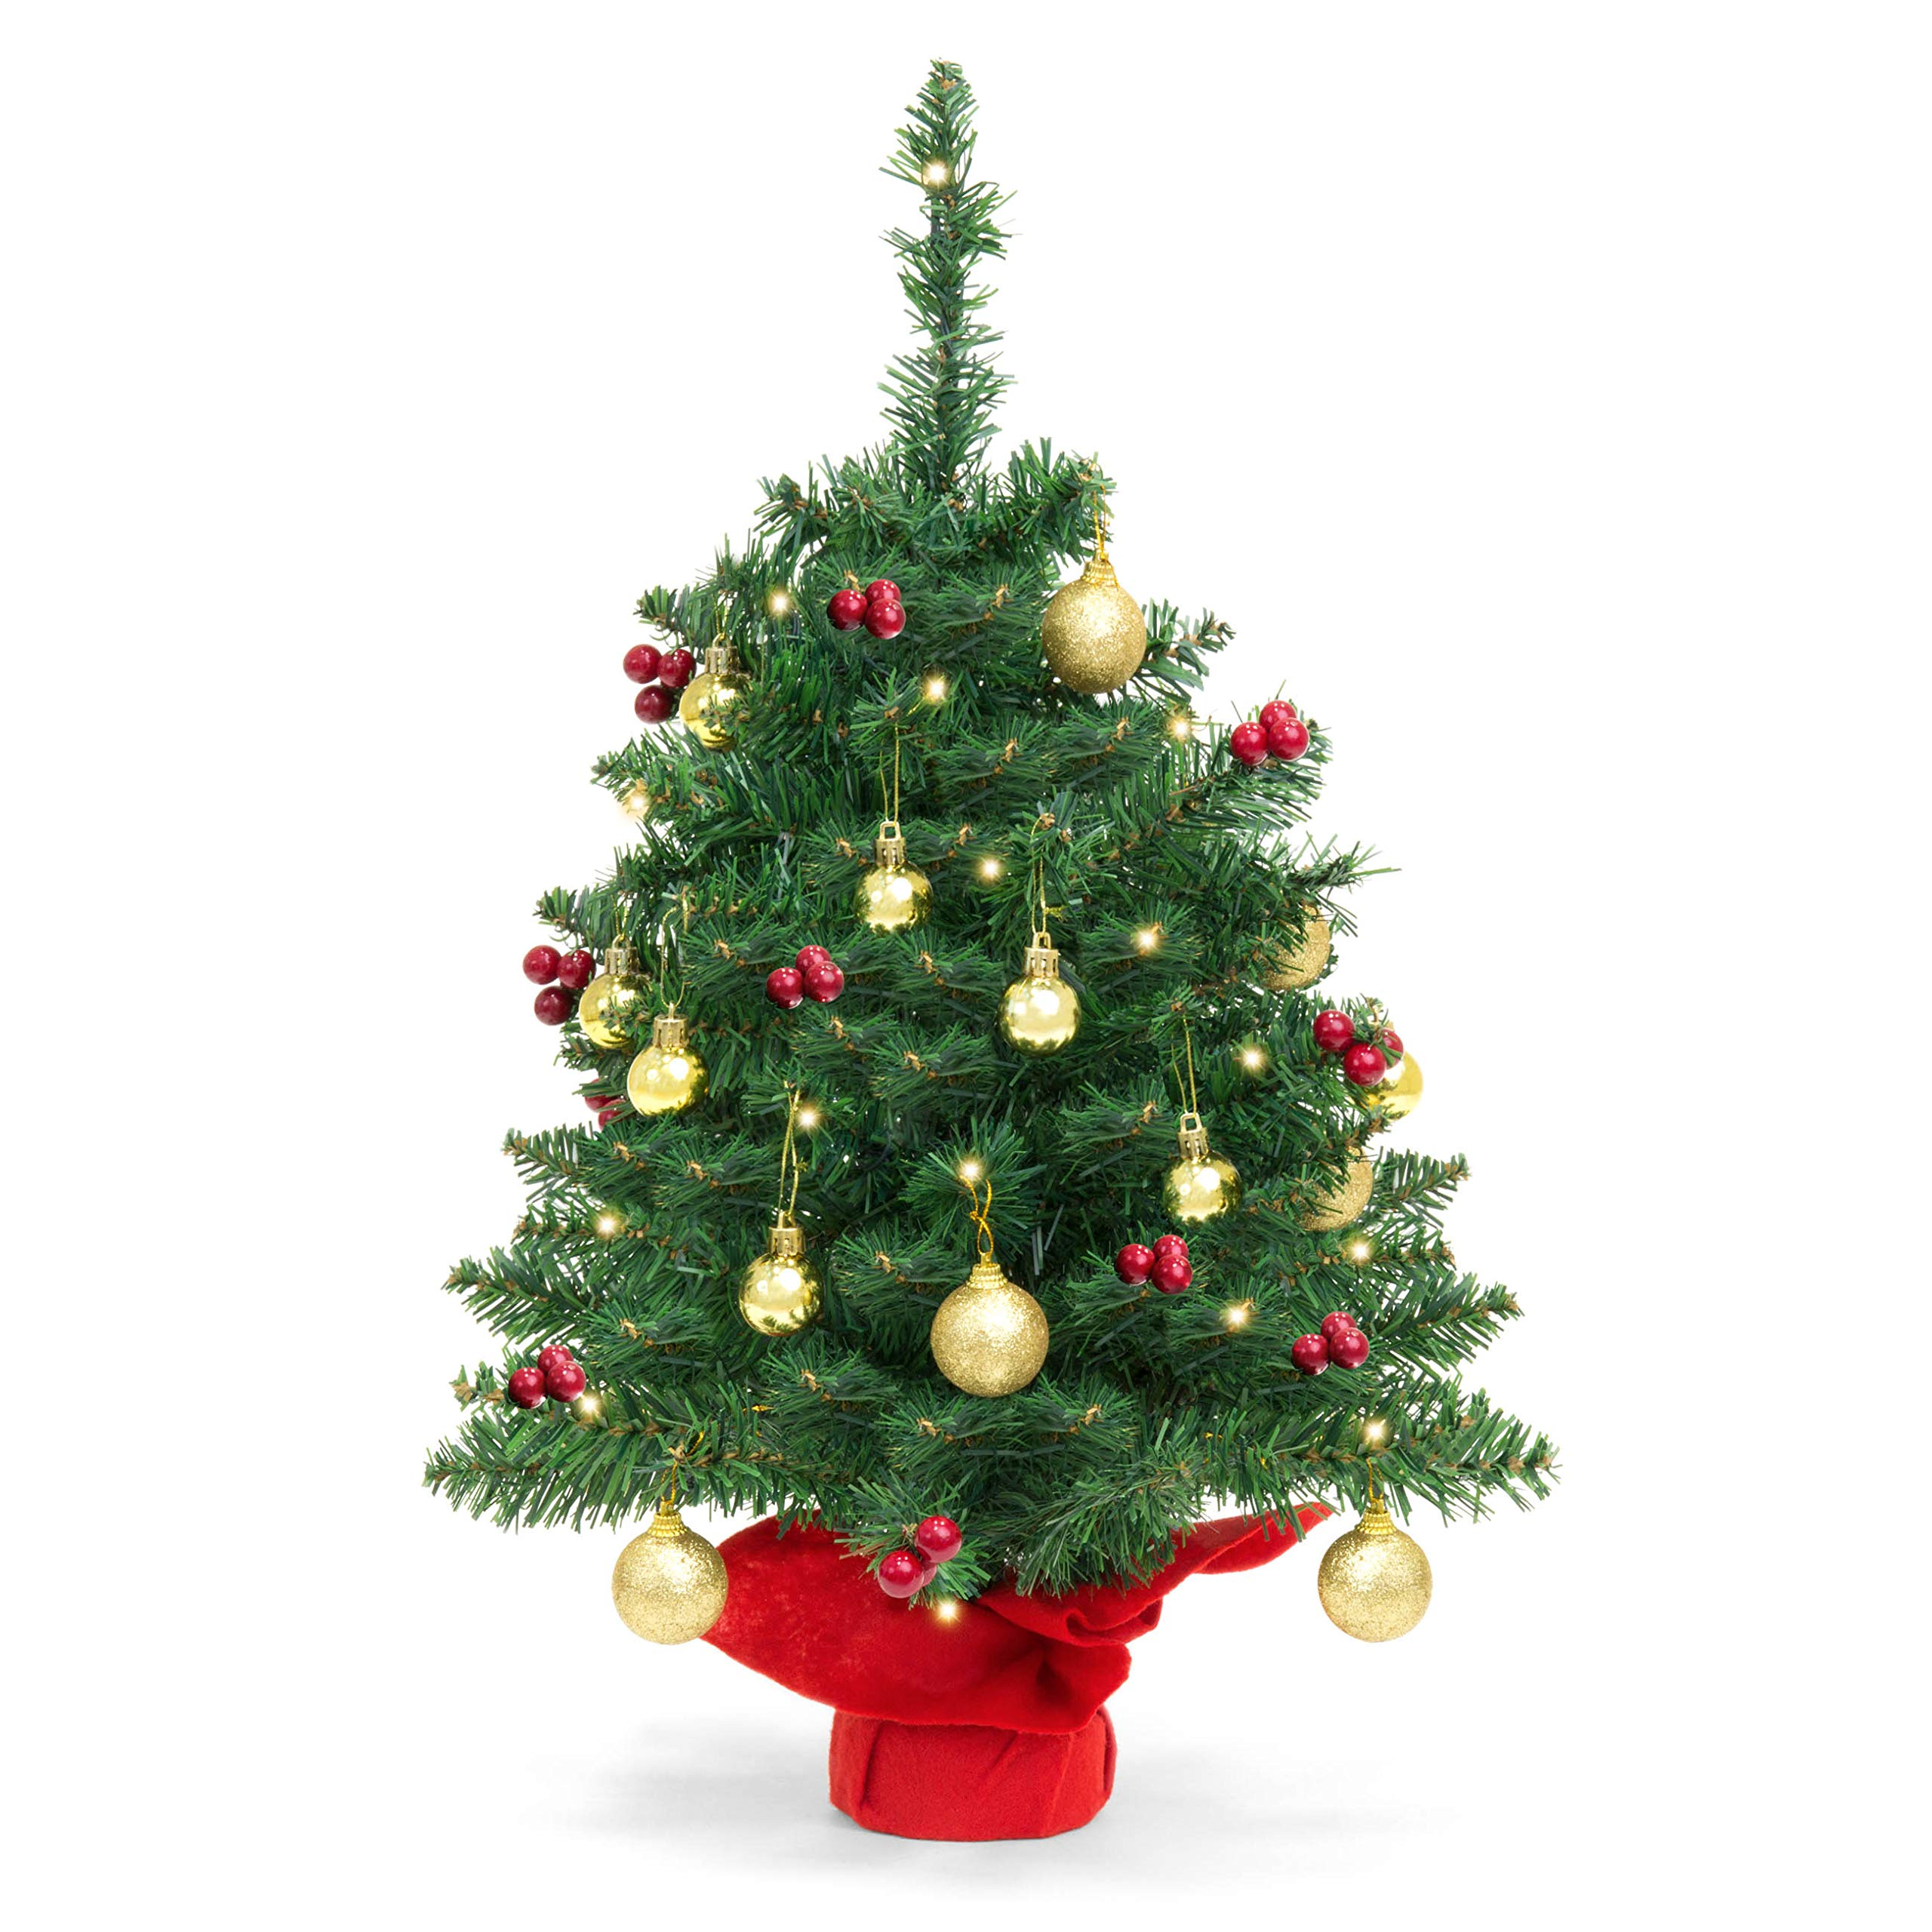 Best Choice Products 22'' Tabletop Pre-lit Christmas Tree Battery Operated with Red Berries and Gold Ornaments